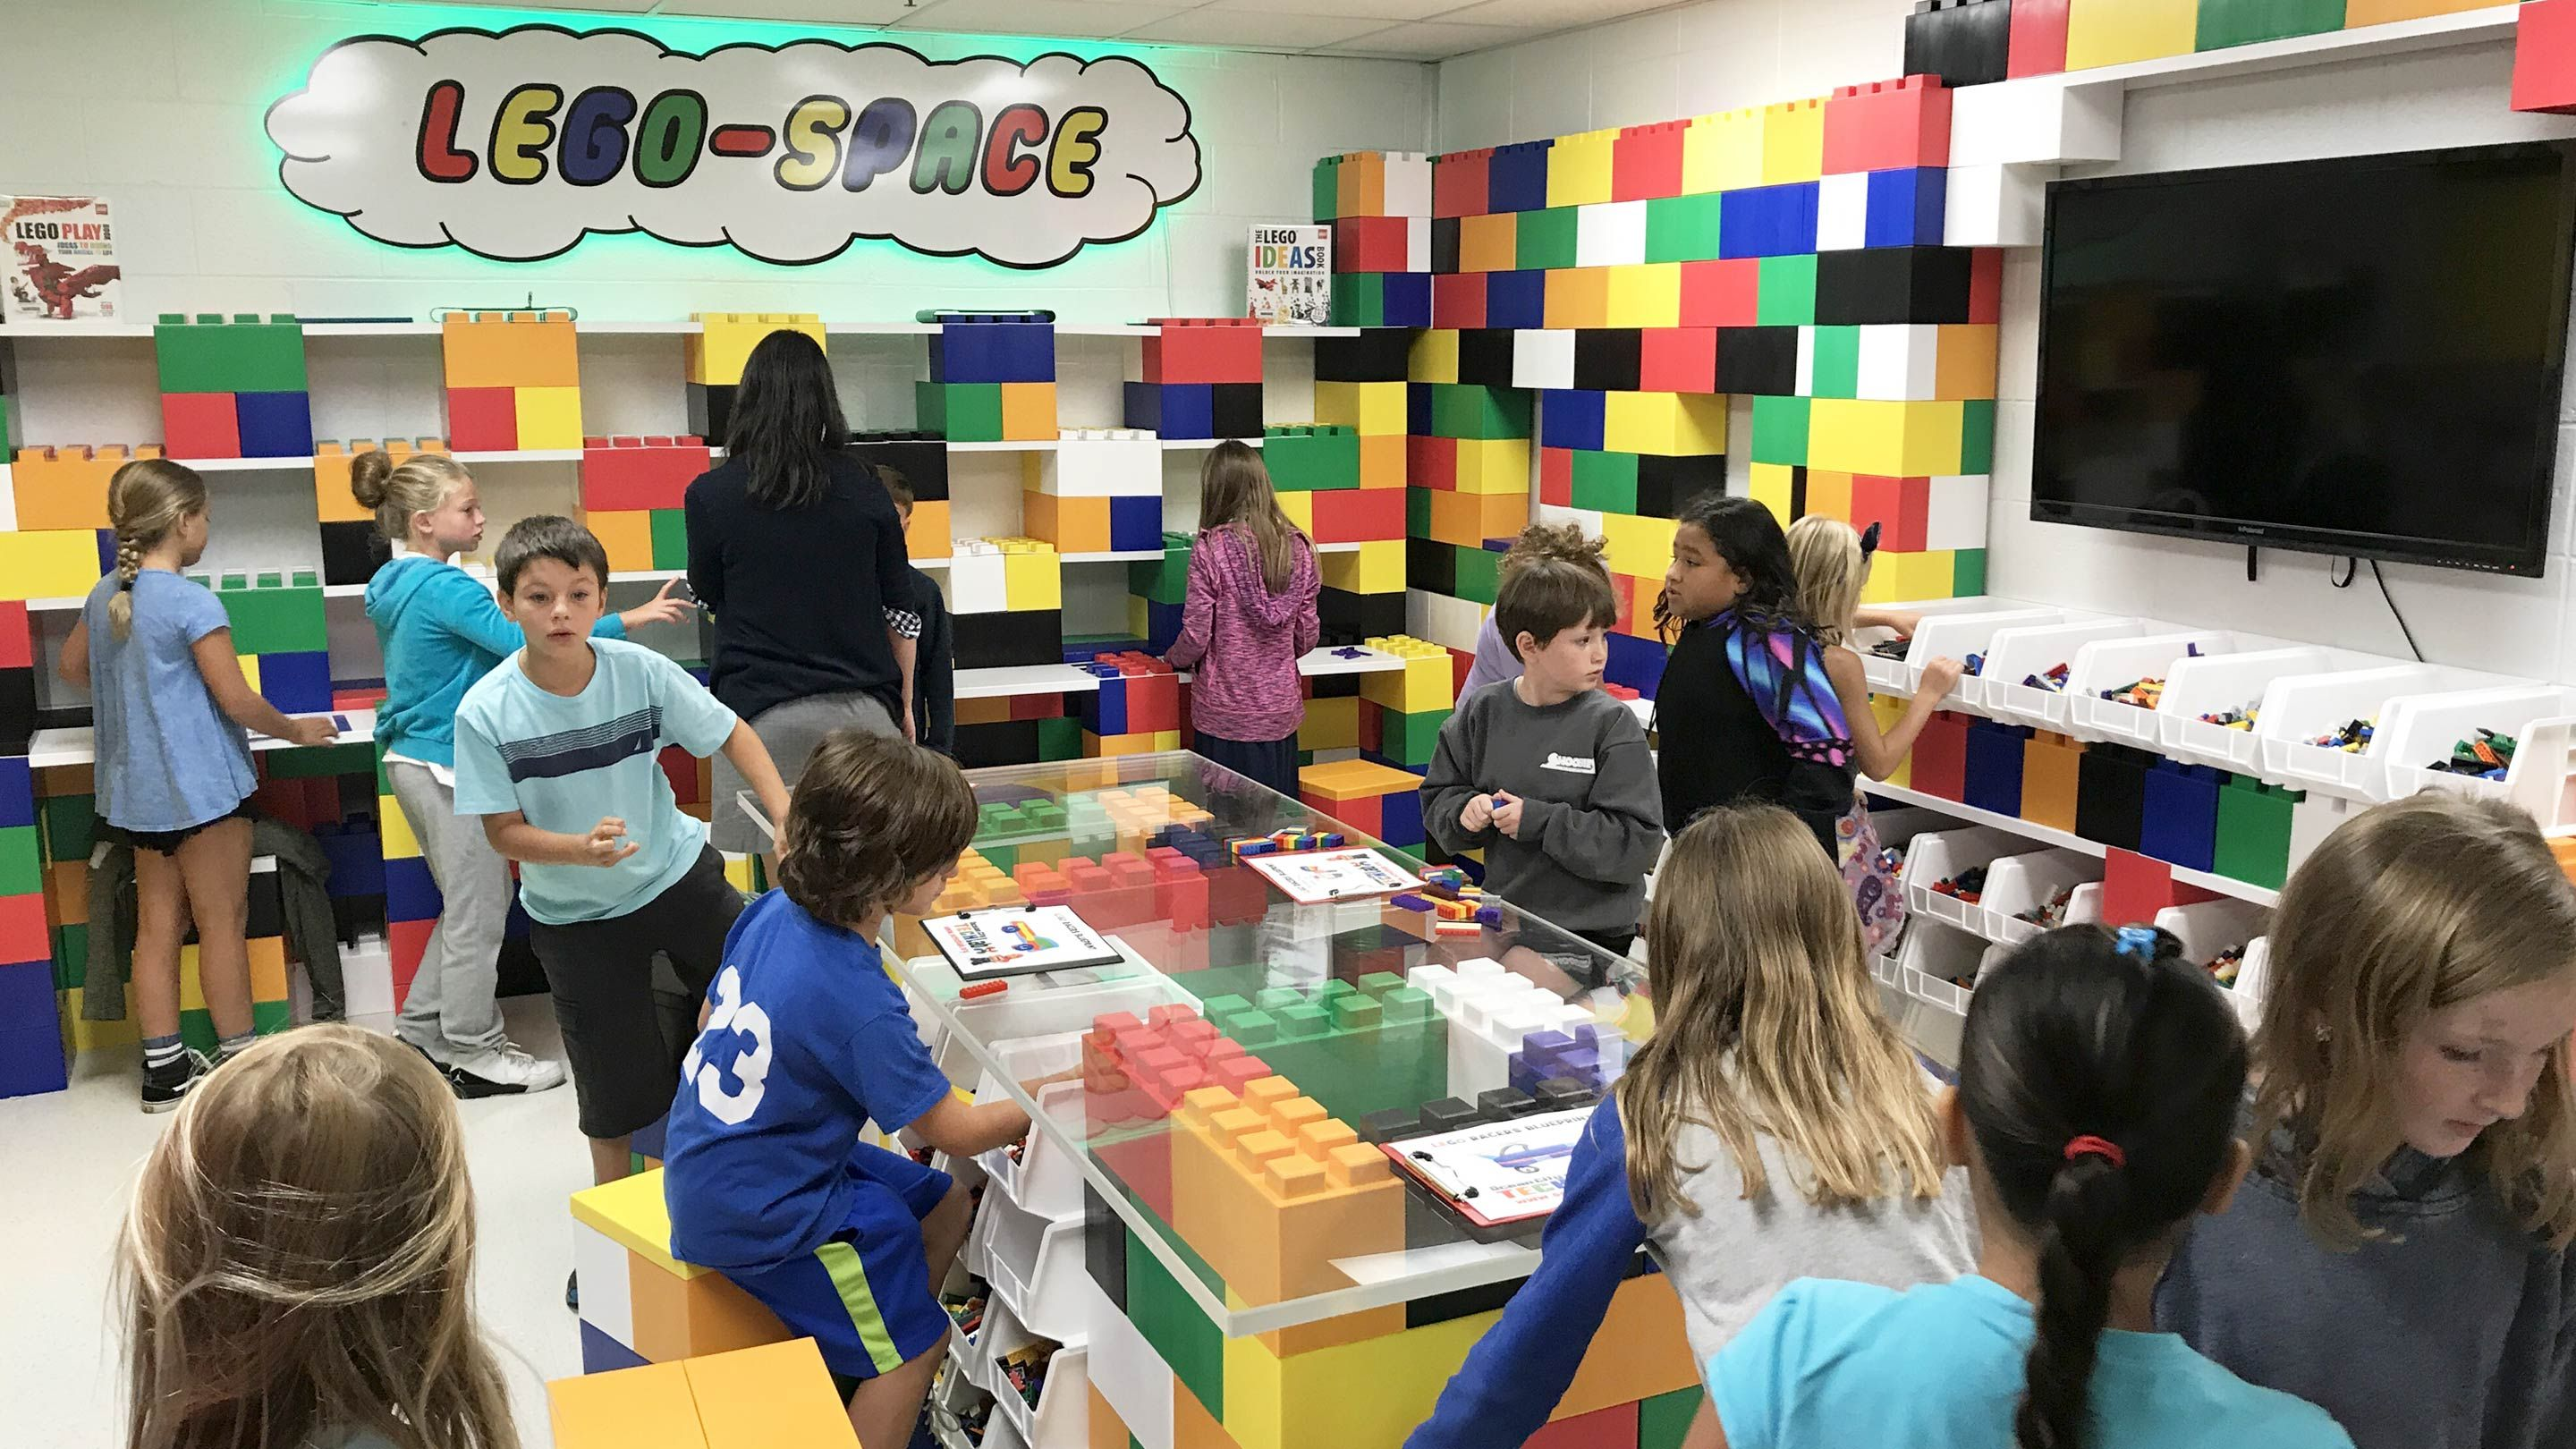 A Makerspace Built by Elementary Students  Edutopia